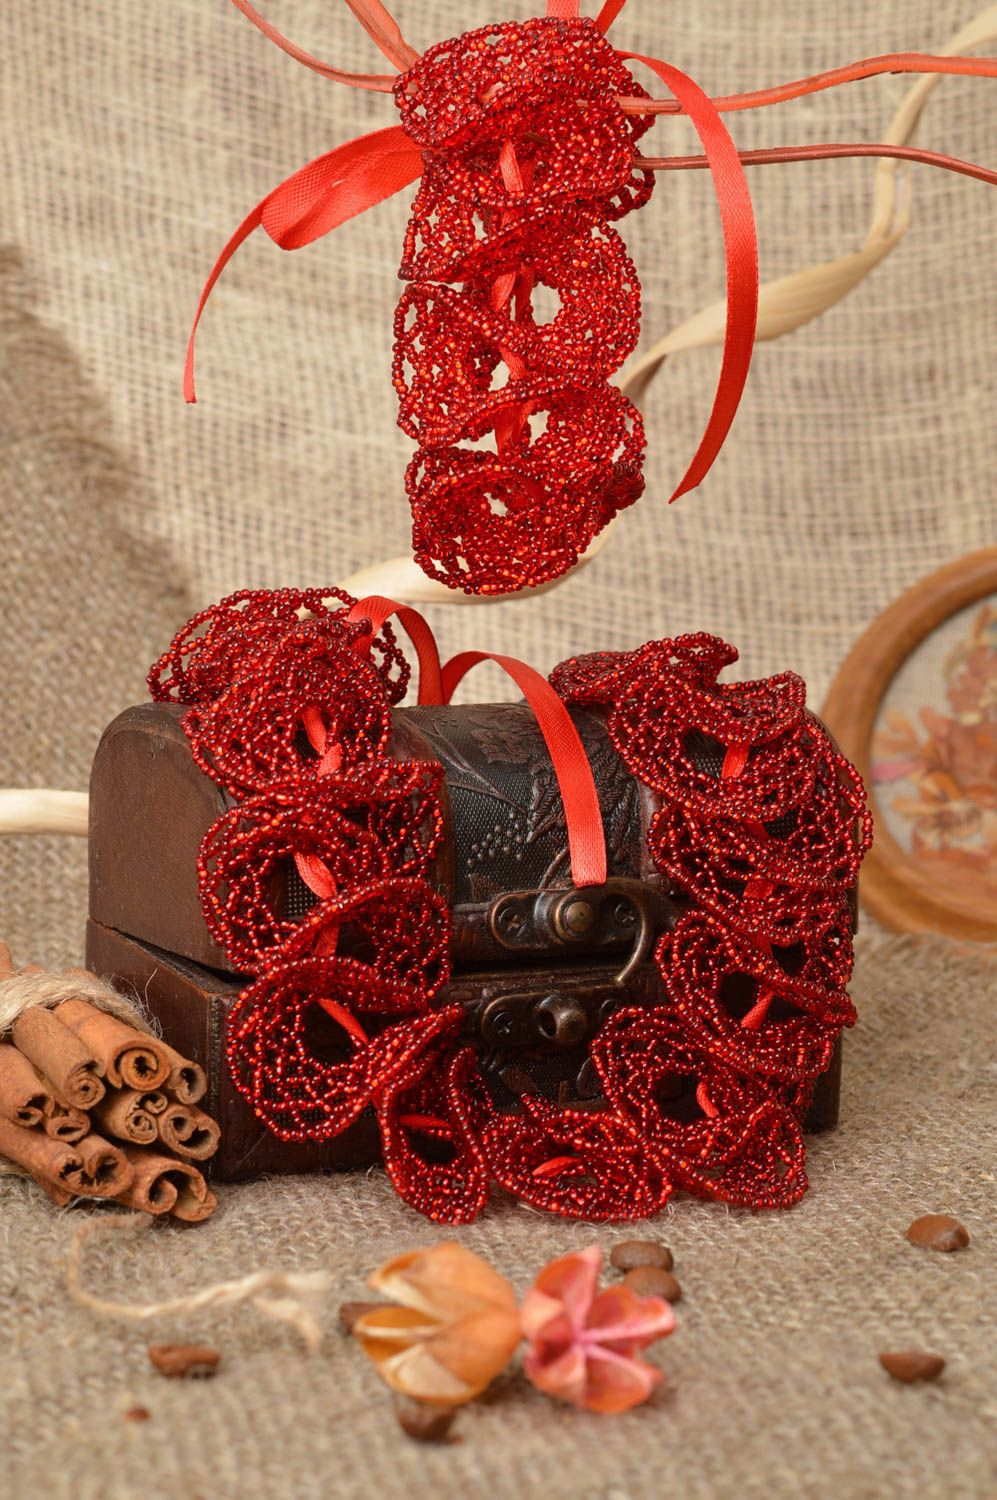 Set of handmade red bead woven jewelry 2 items wrist bracelet and necklace photo 1